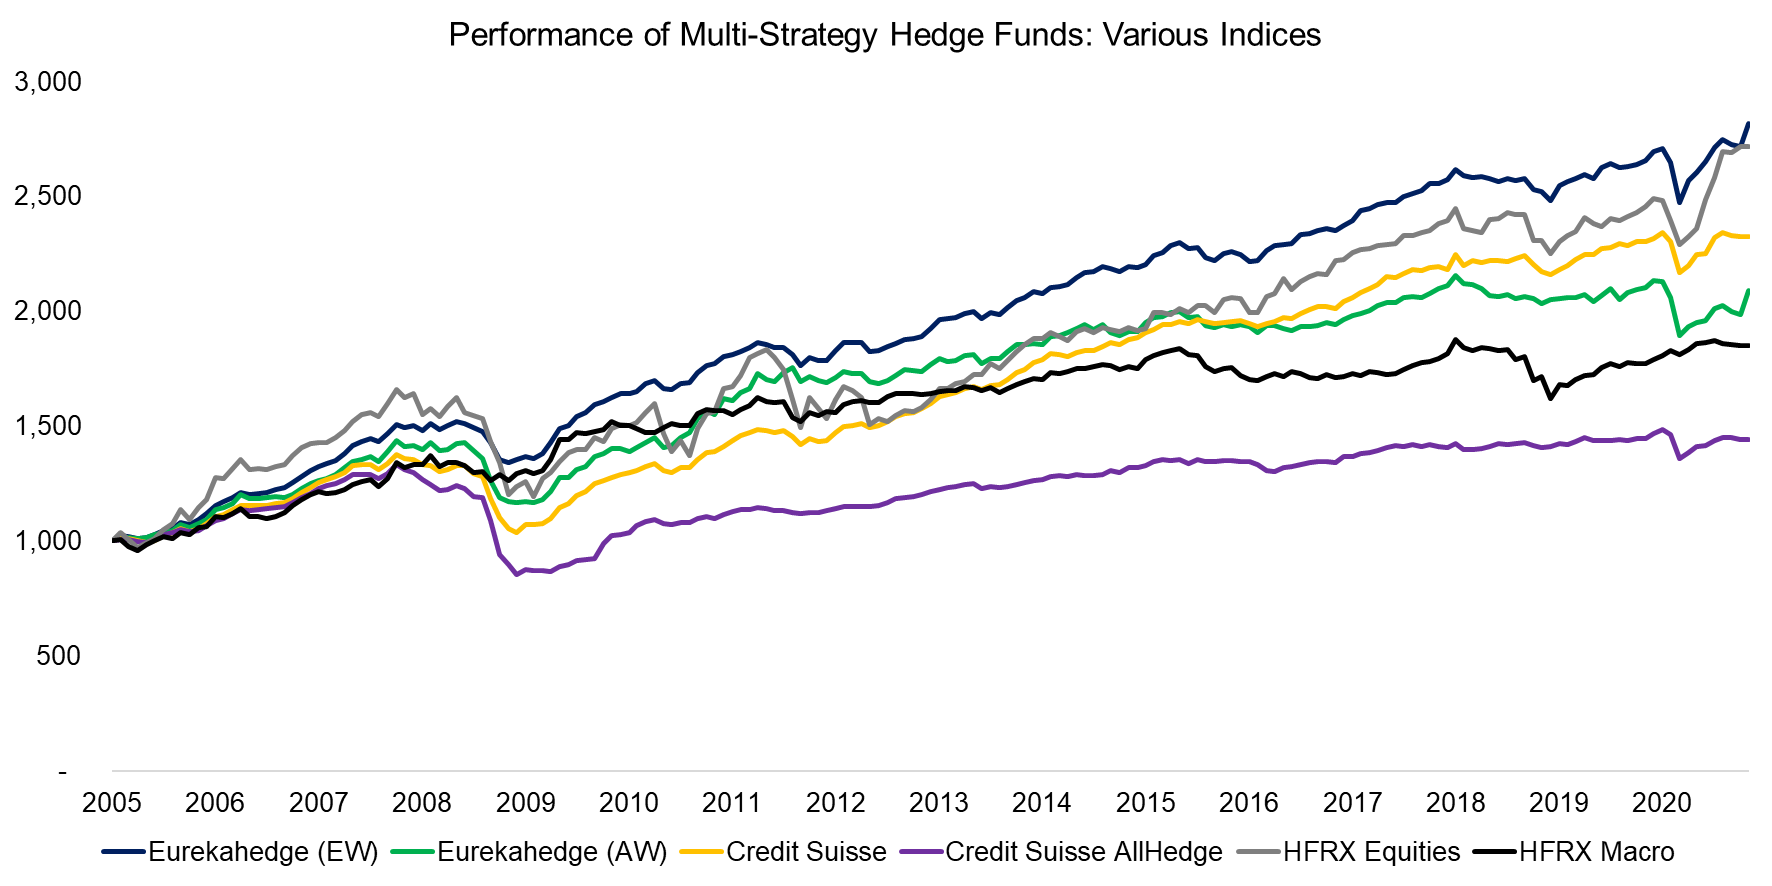 Performance of Multi-Strategy Hedge Funds Various Indices